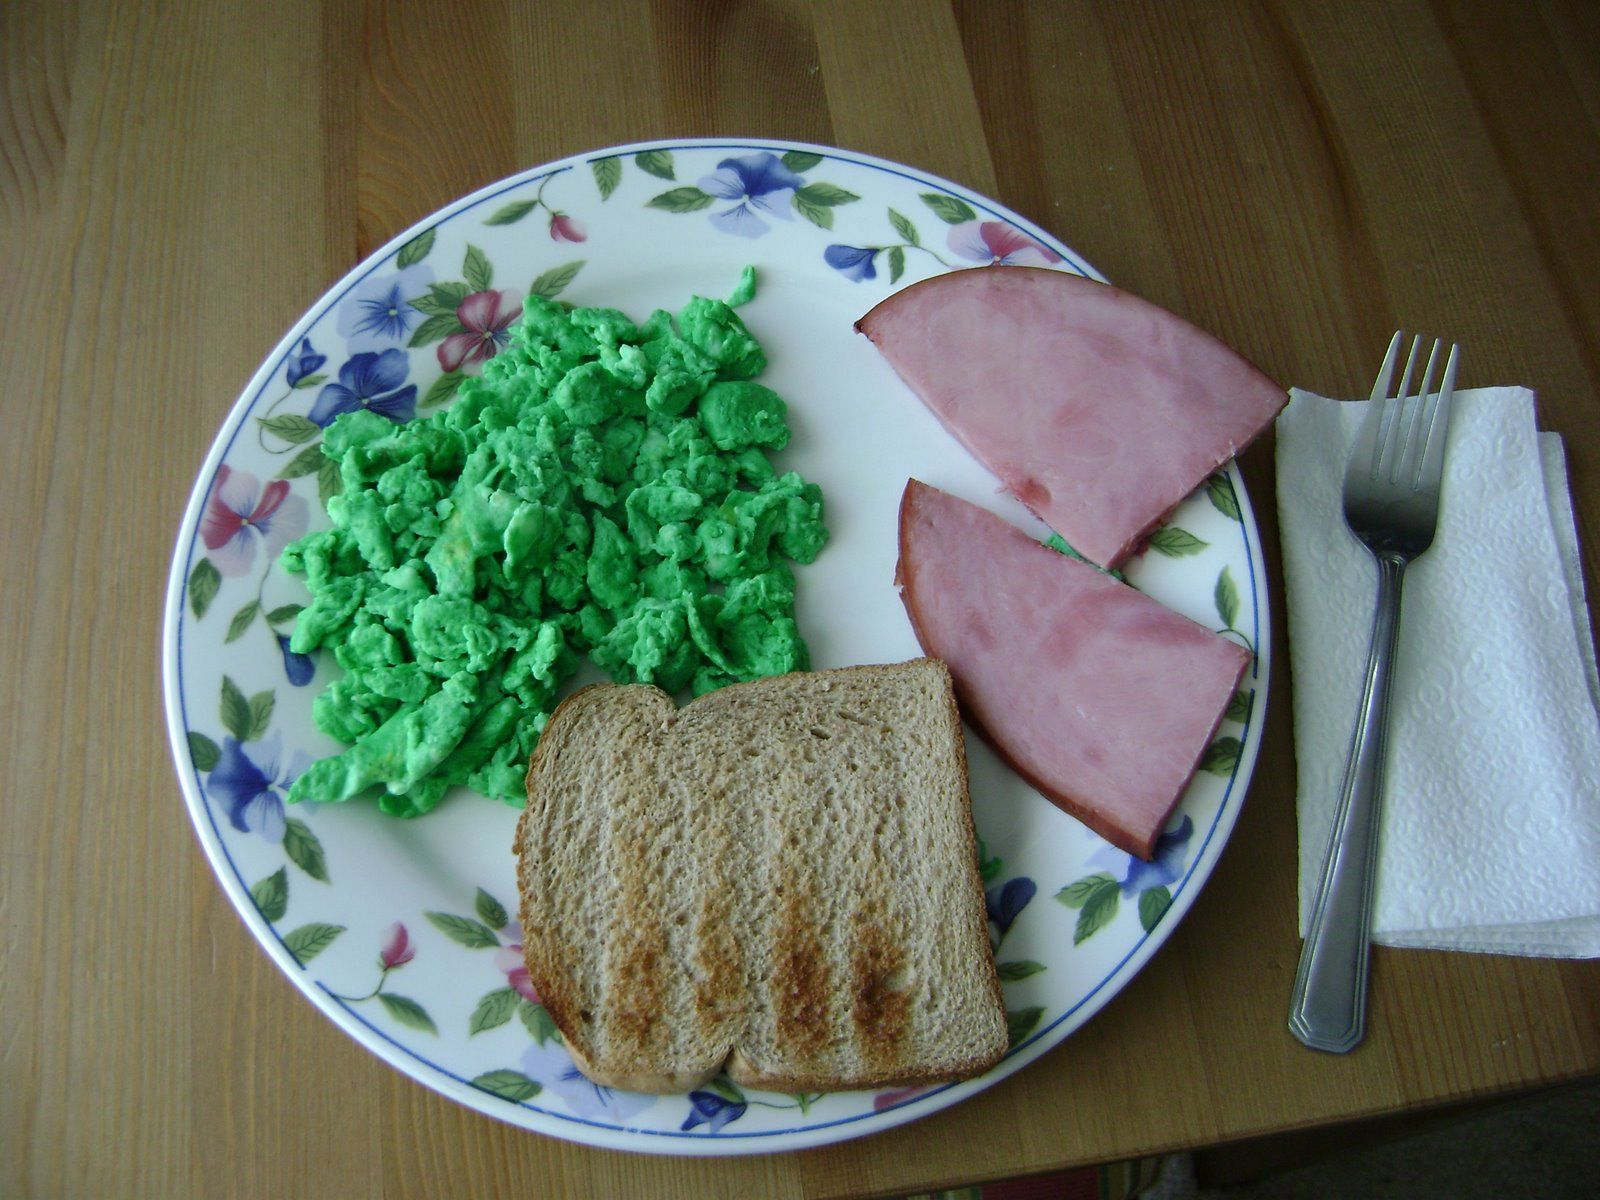 Food Coloring In Scrambled Eggs Ham On The Side